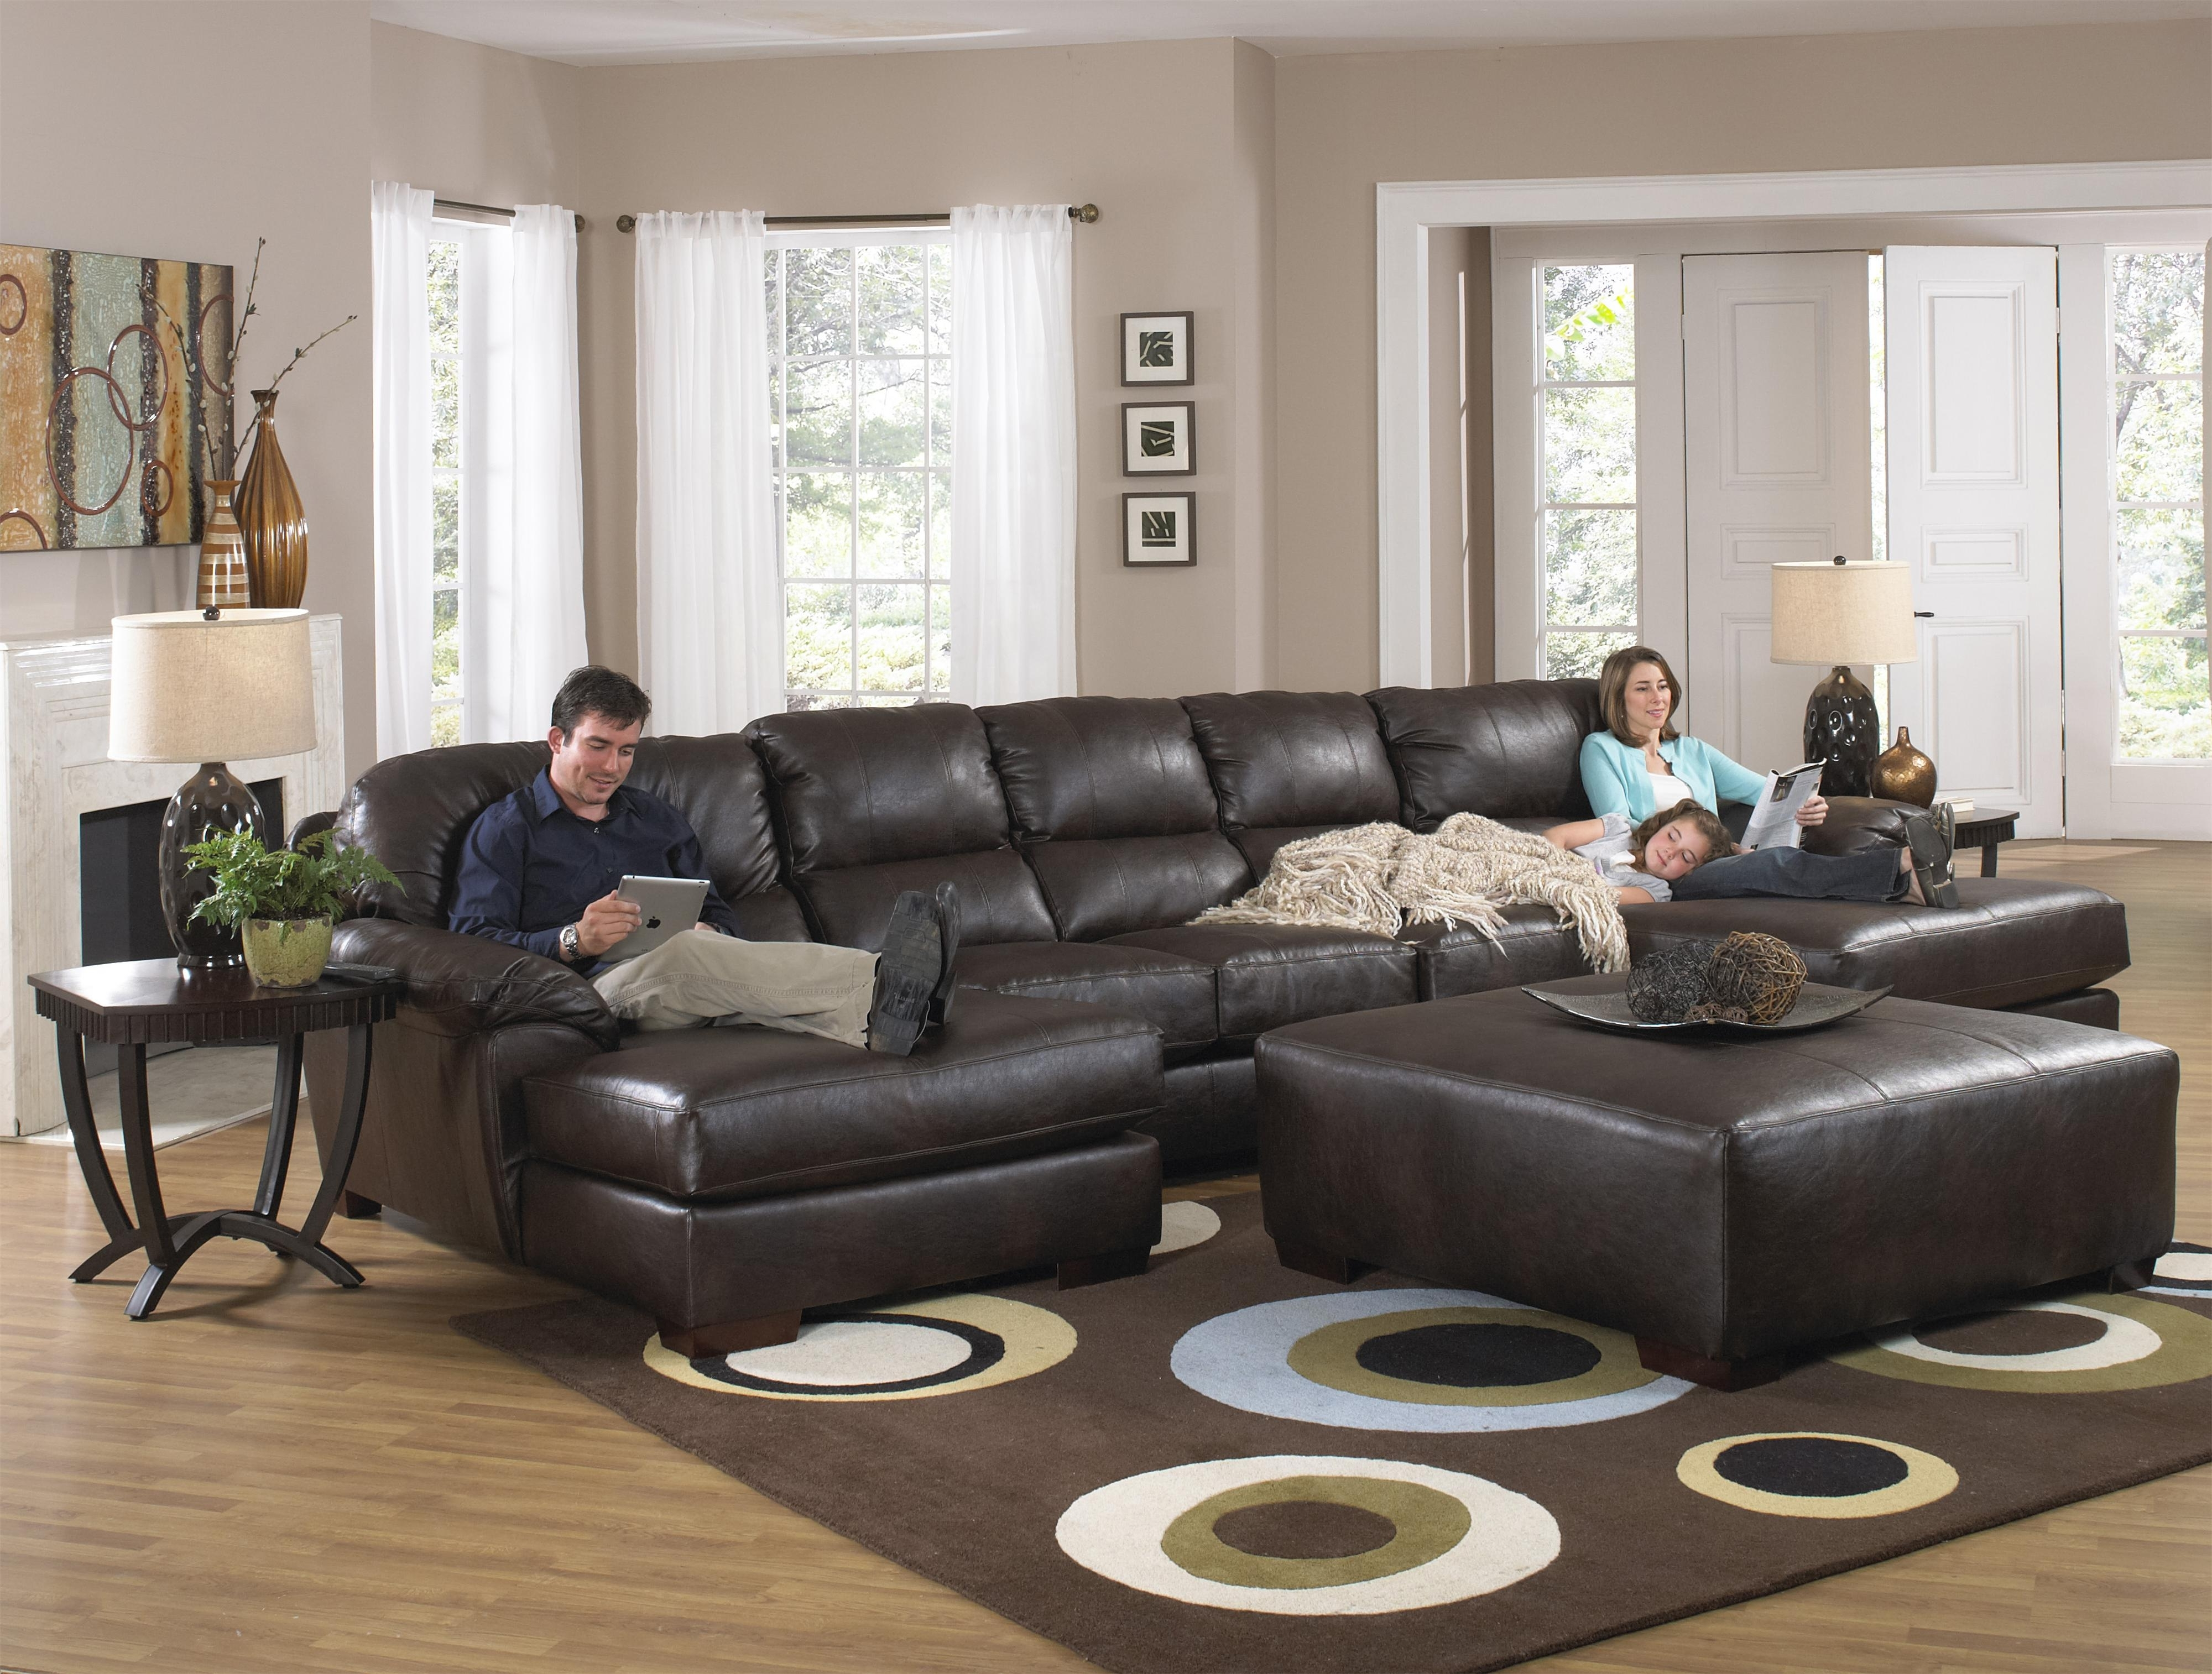 Sofa : Beautiful Large Sectional Sofa With Chaise L Shaped Cream With Well Known Sectional Sofas (View 13 of 15)